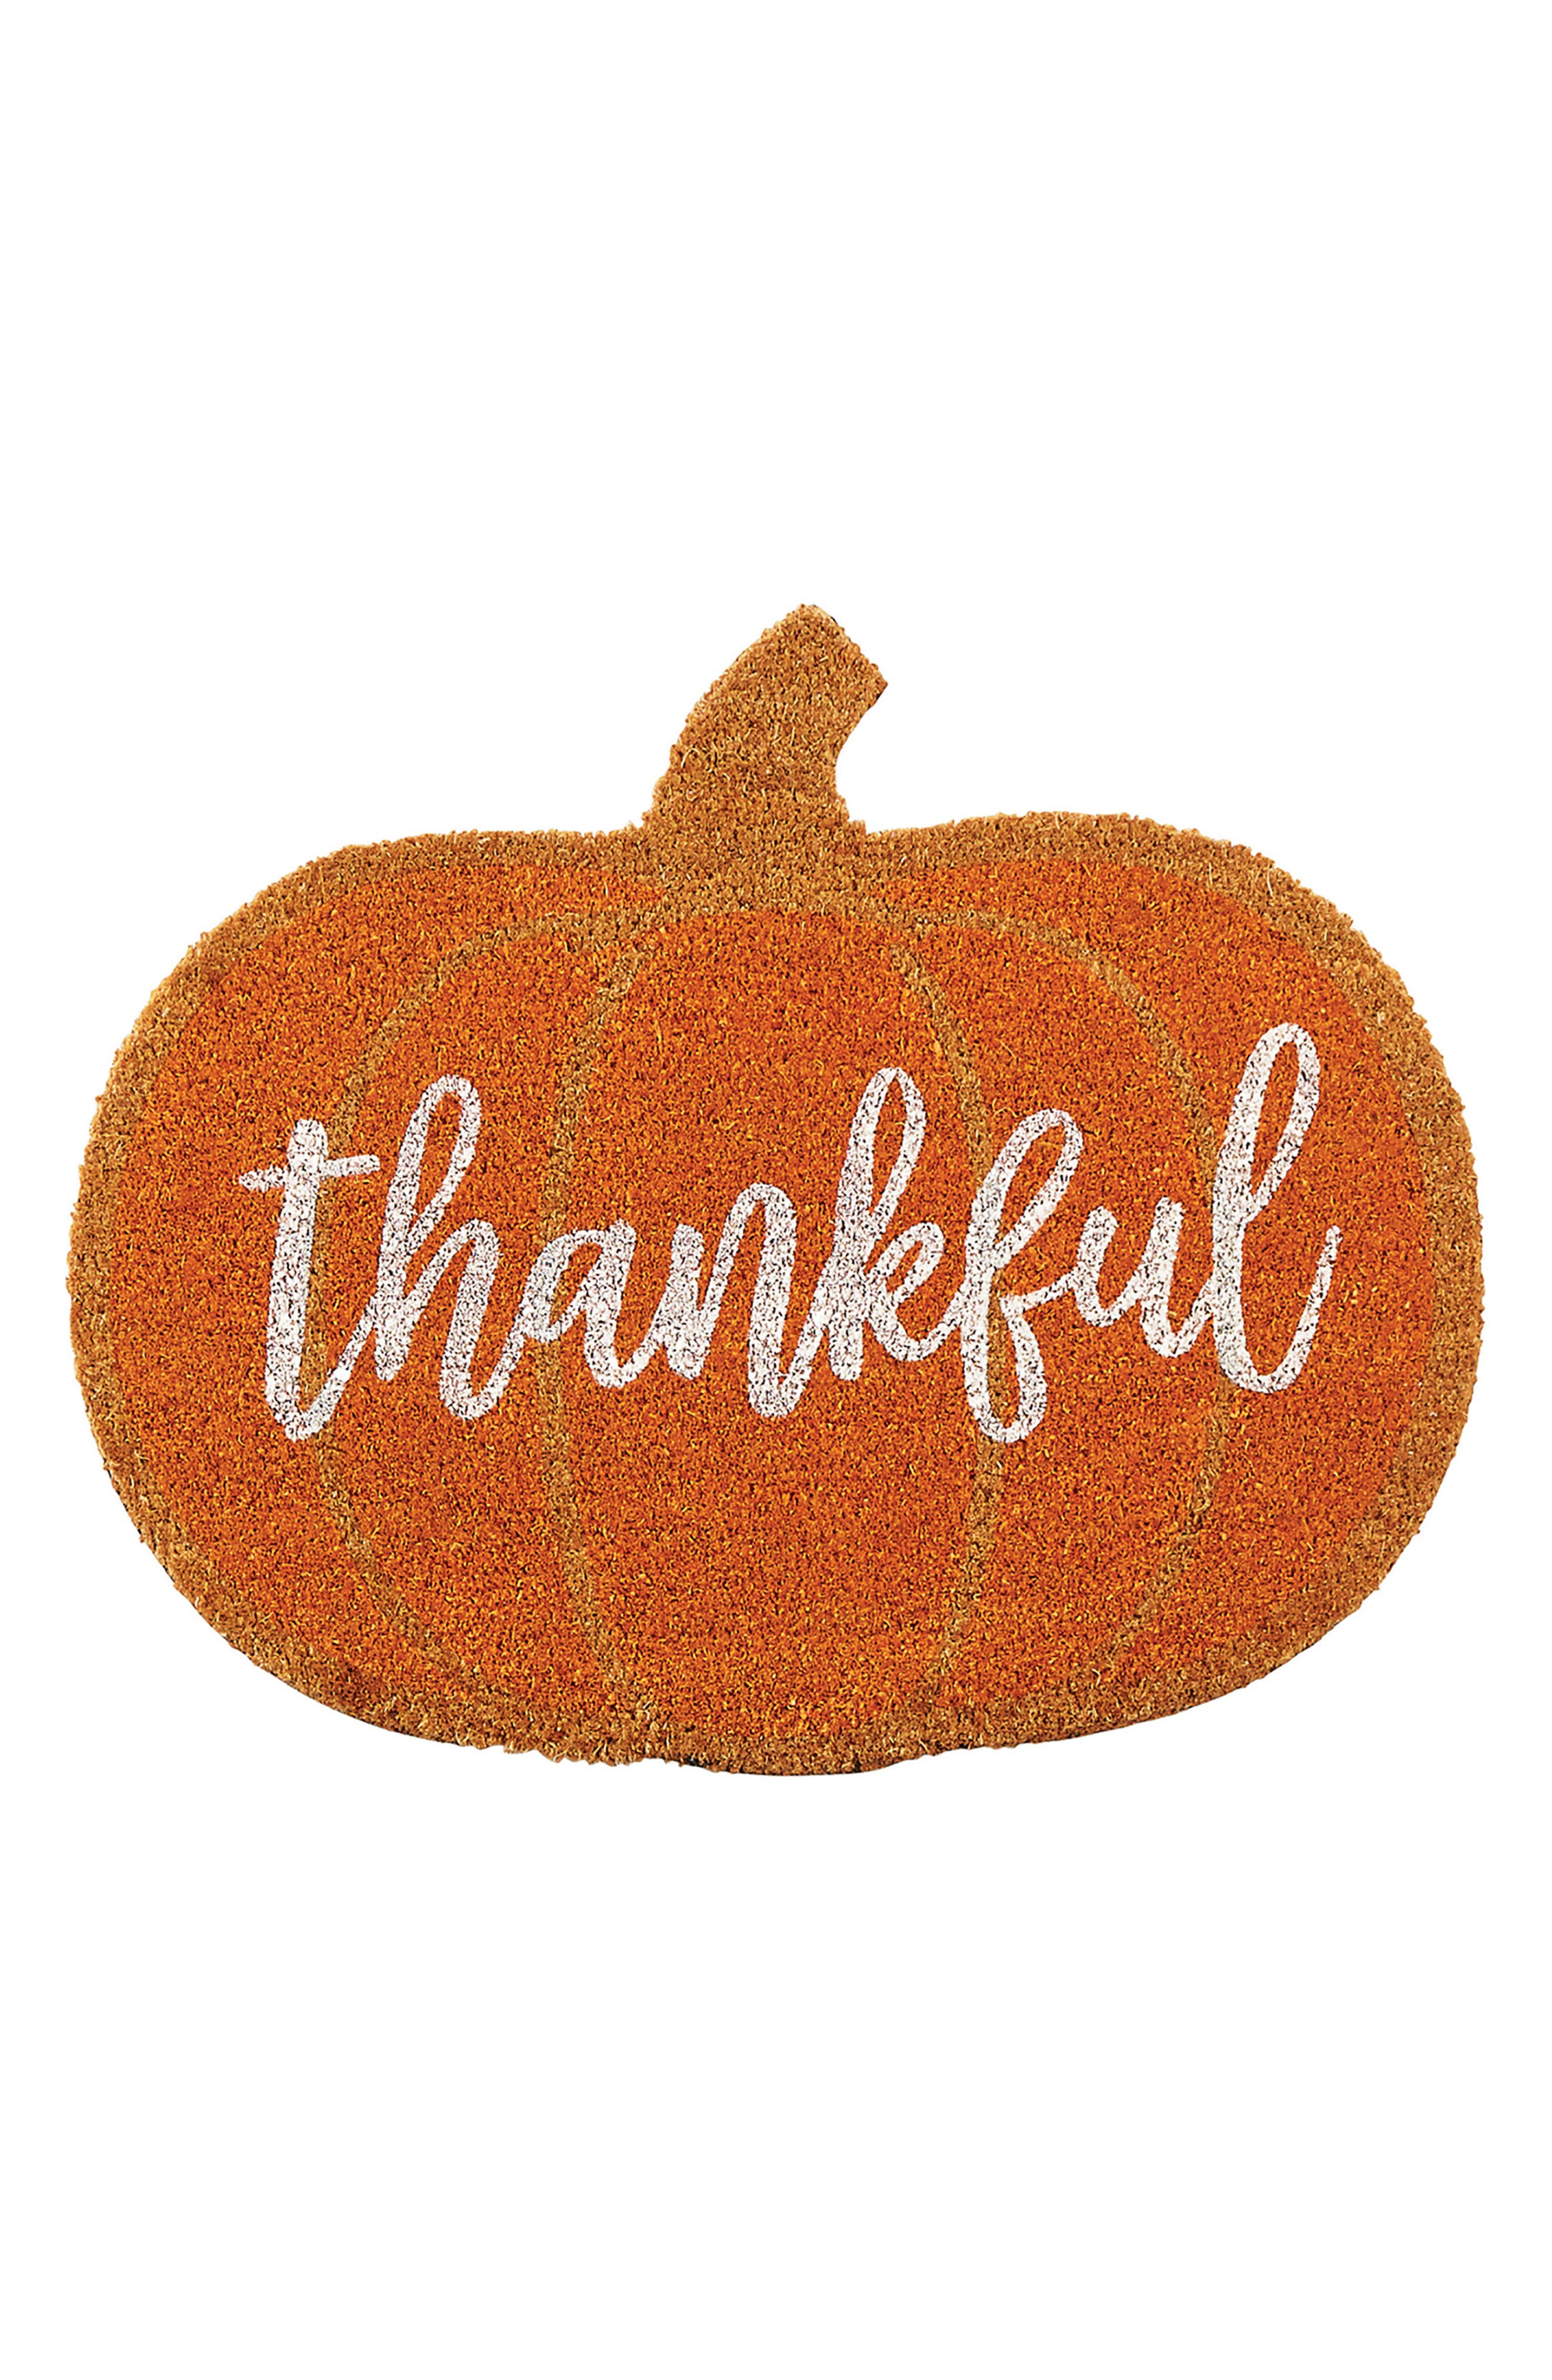 Thankful Coir Doormat,                         Main,                         color, 200